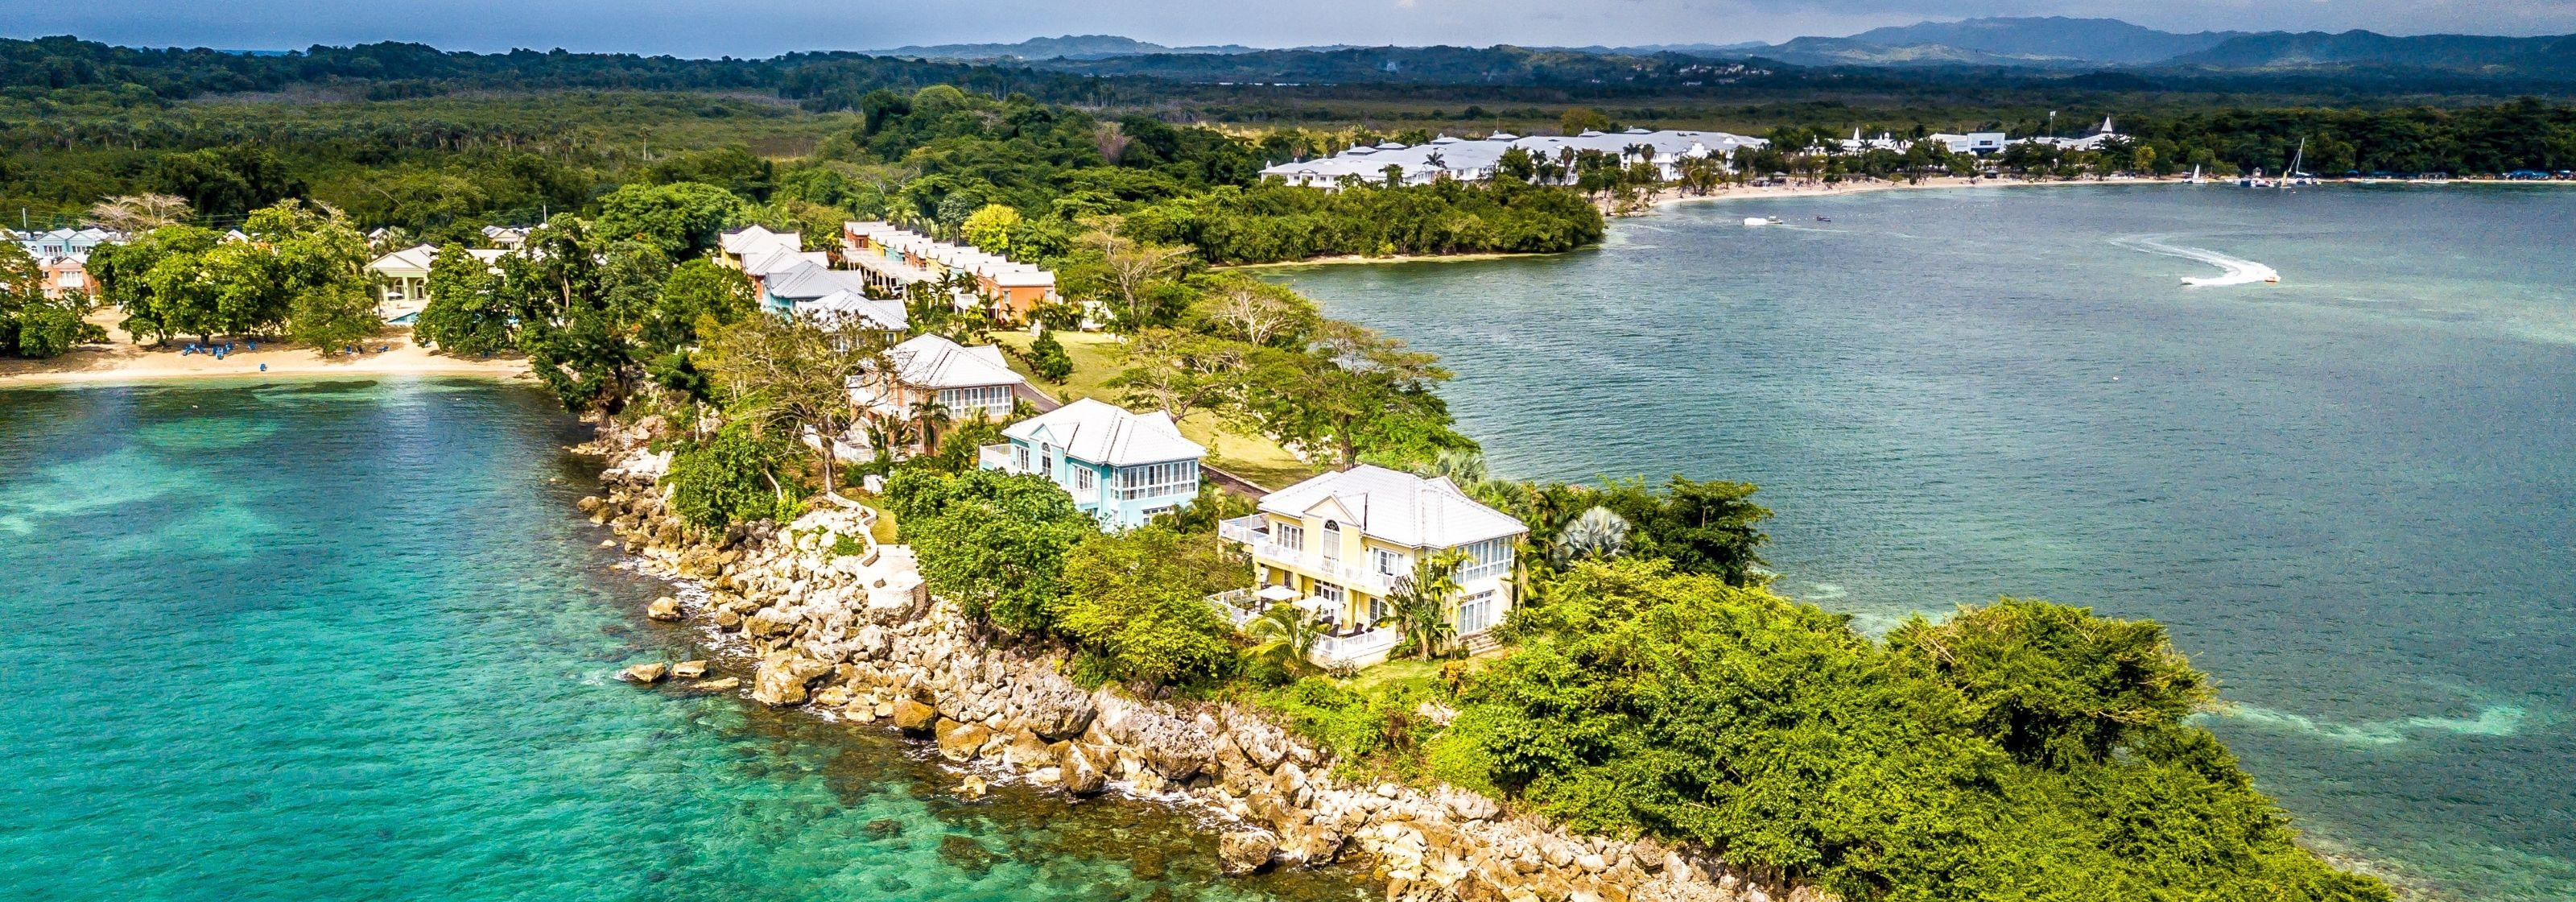 Things to do in Negril